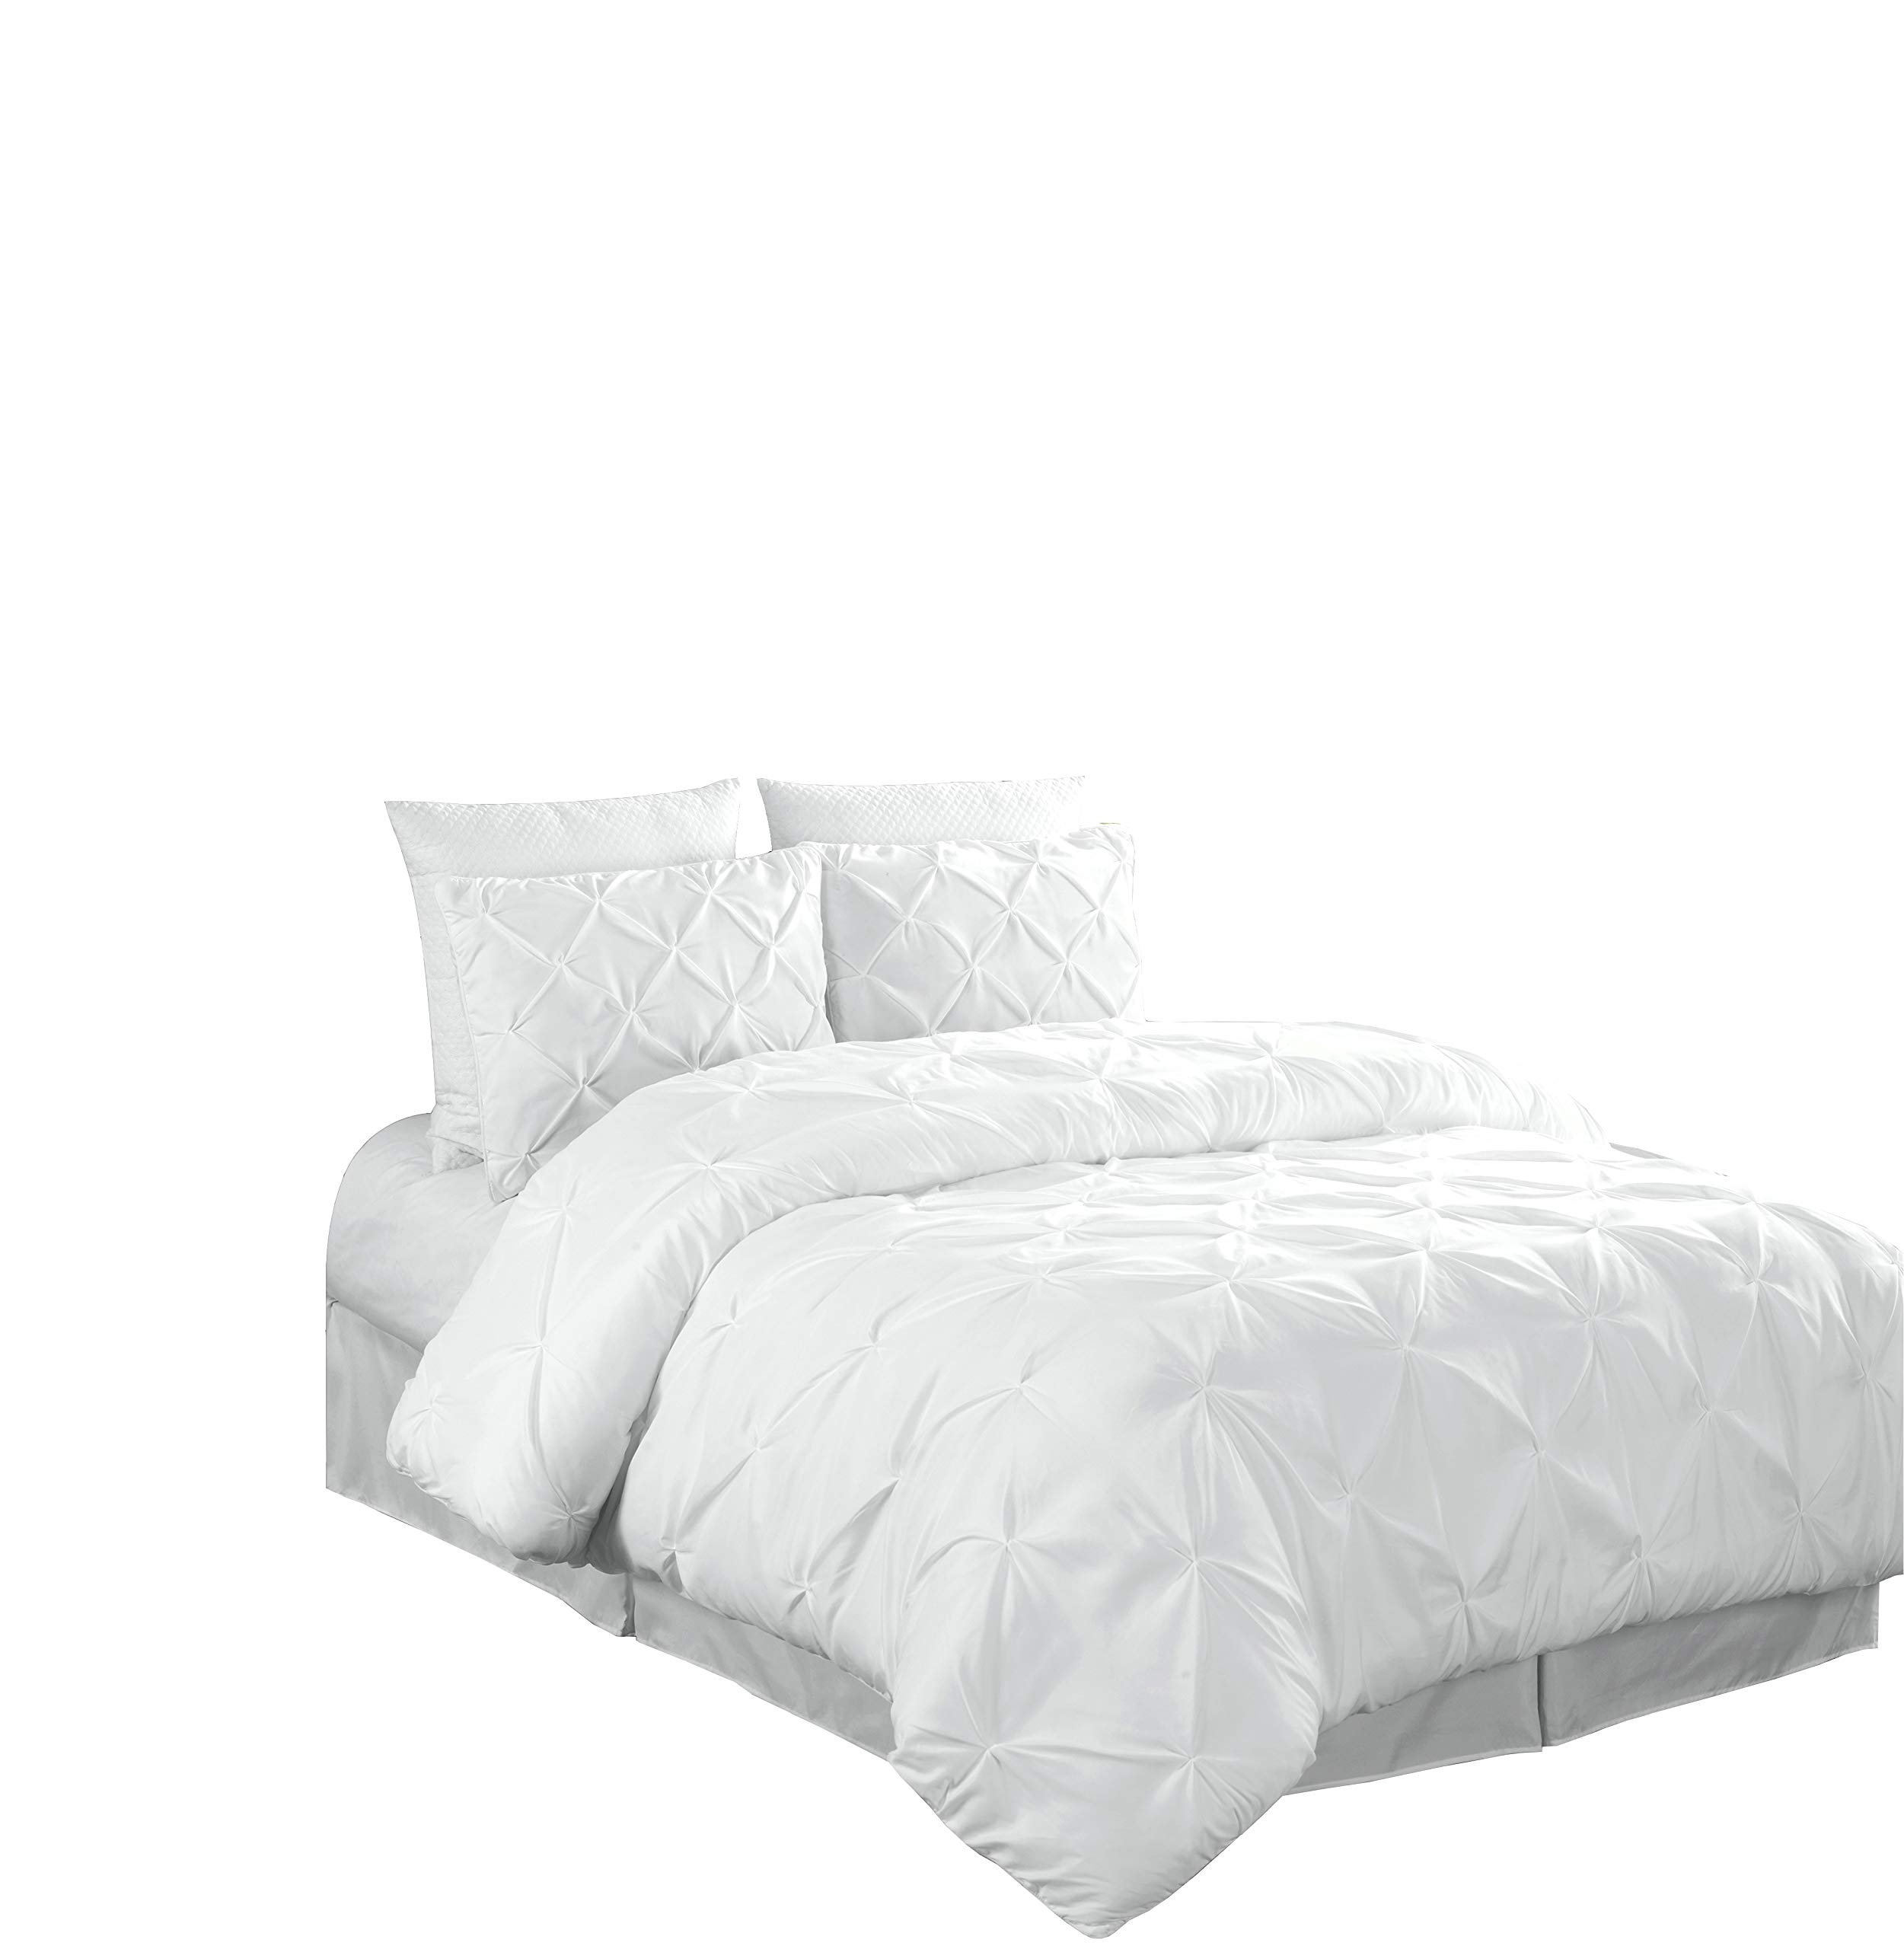 Chezmoi Collection Berlin 3-Piece Pintuck Pinch Pleat Comforter Set (Queen, White) by Chezmoi Collection